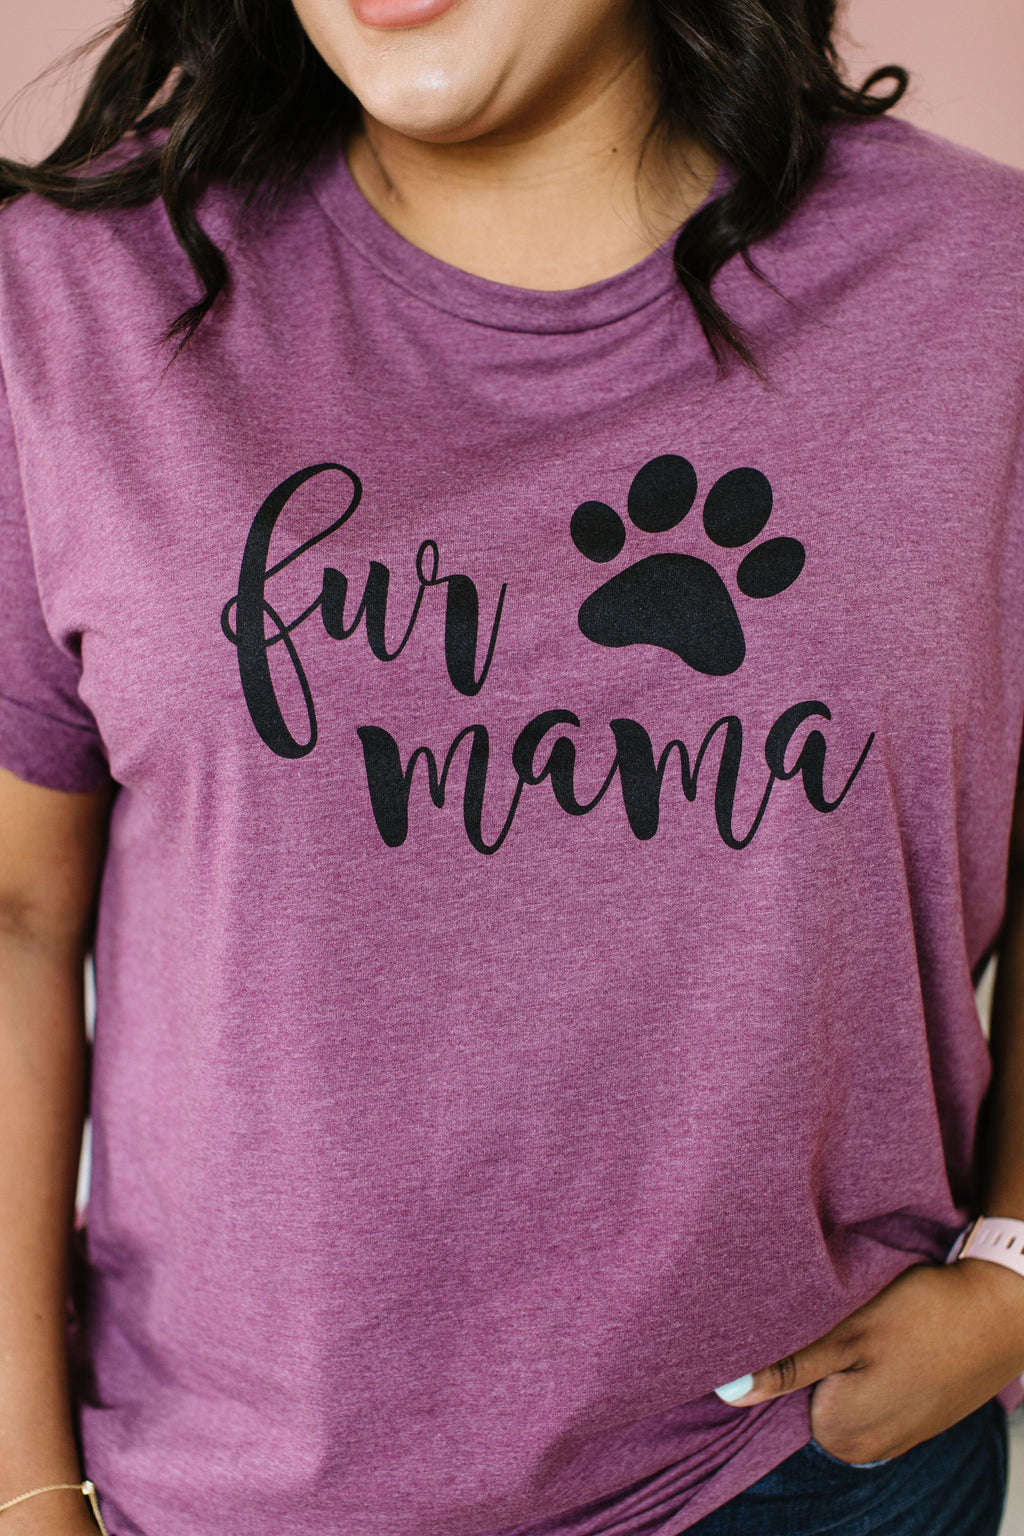 Fur Mama Graphic Tee-2XL, 3XL, 5-1-2020, BFCM2020, Group A, Group B, Group C, Group D, Large, Medium, Plus, Small, Tops, XL, XS-Womens Artisan USA American Made Clothing Accessories